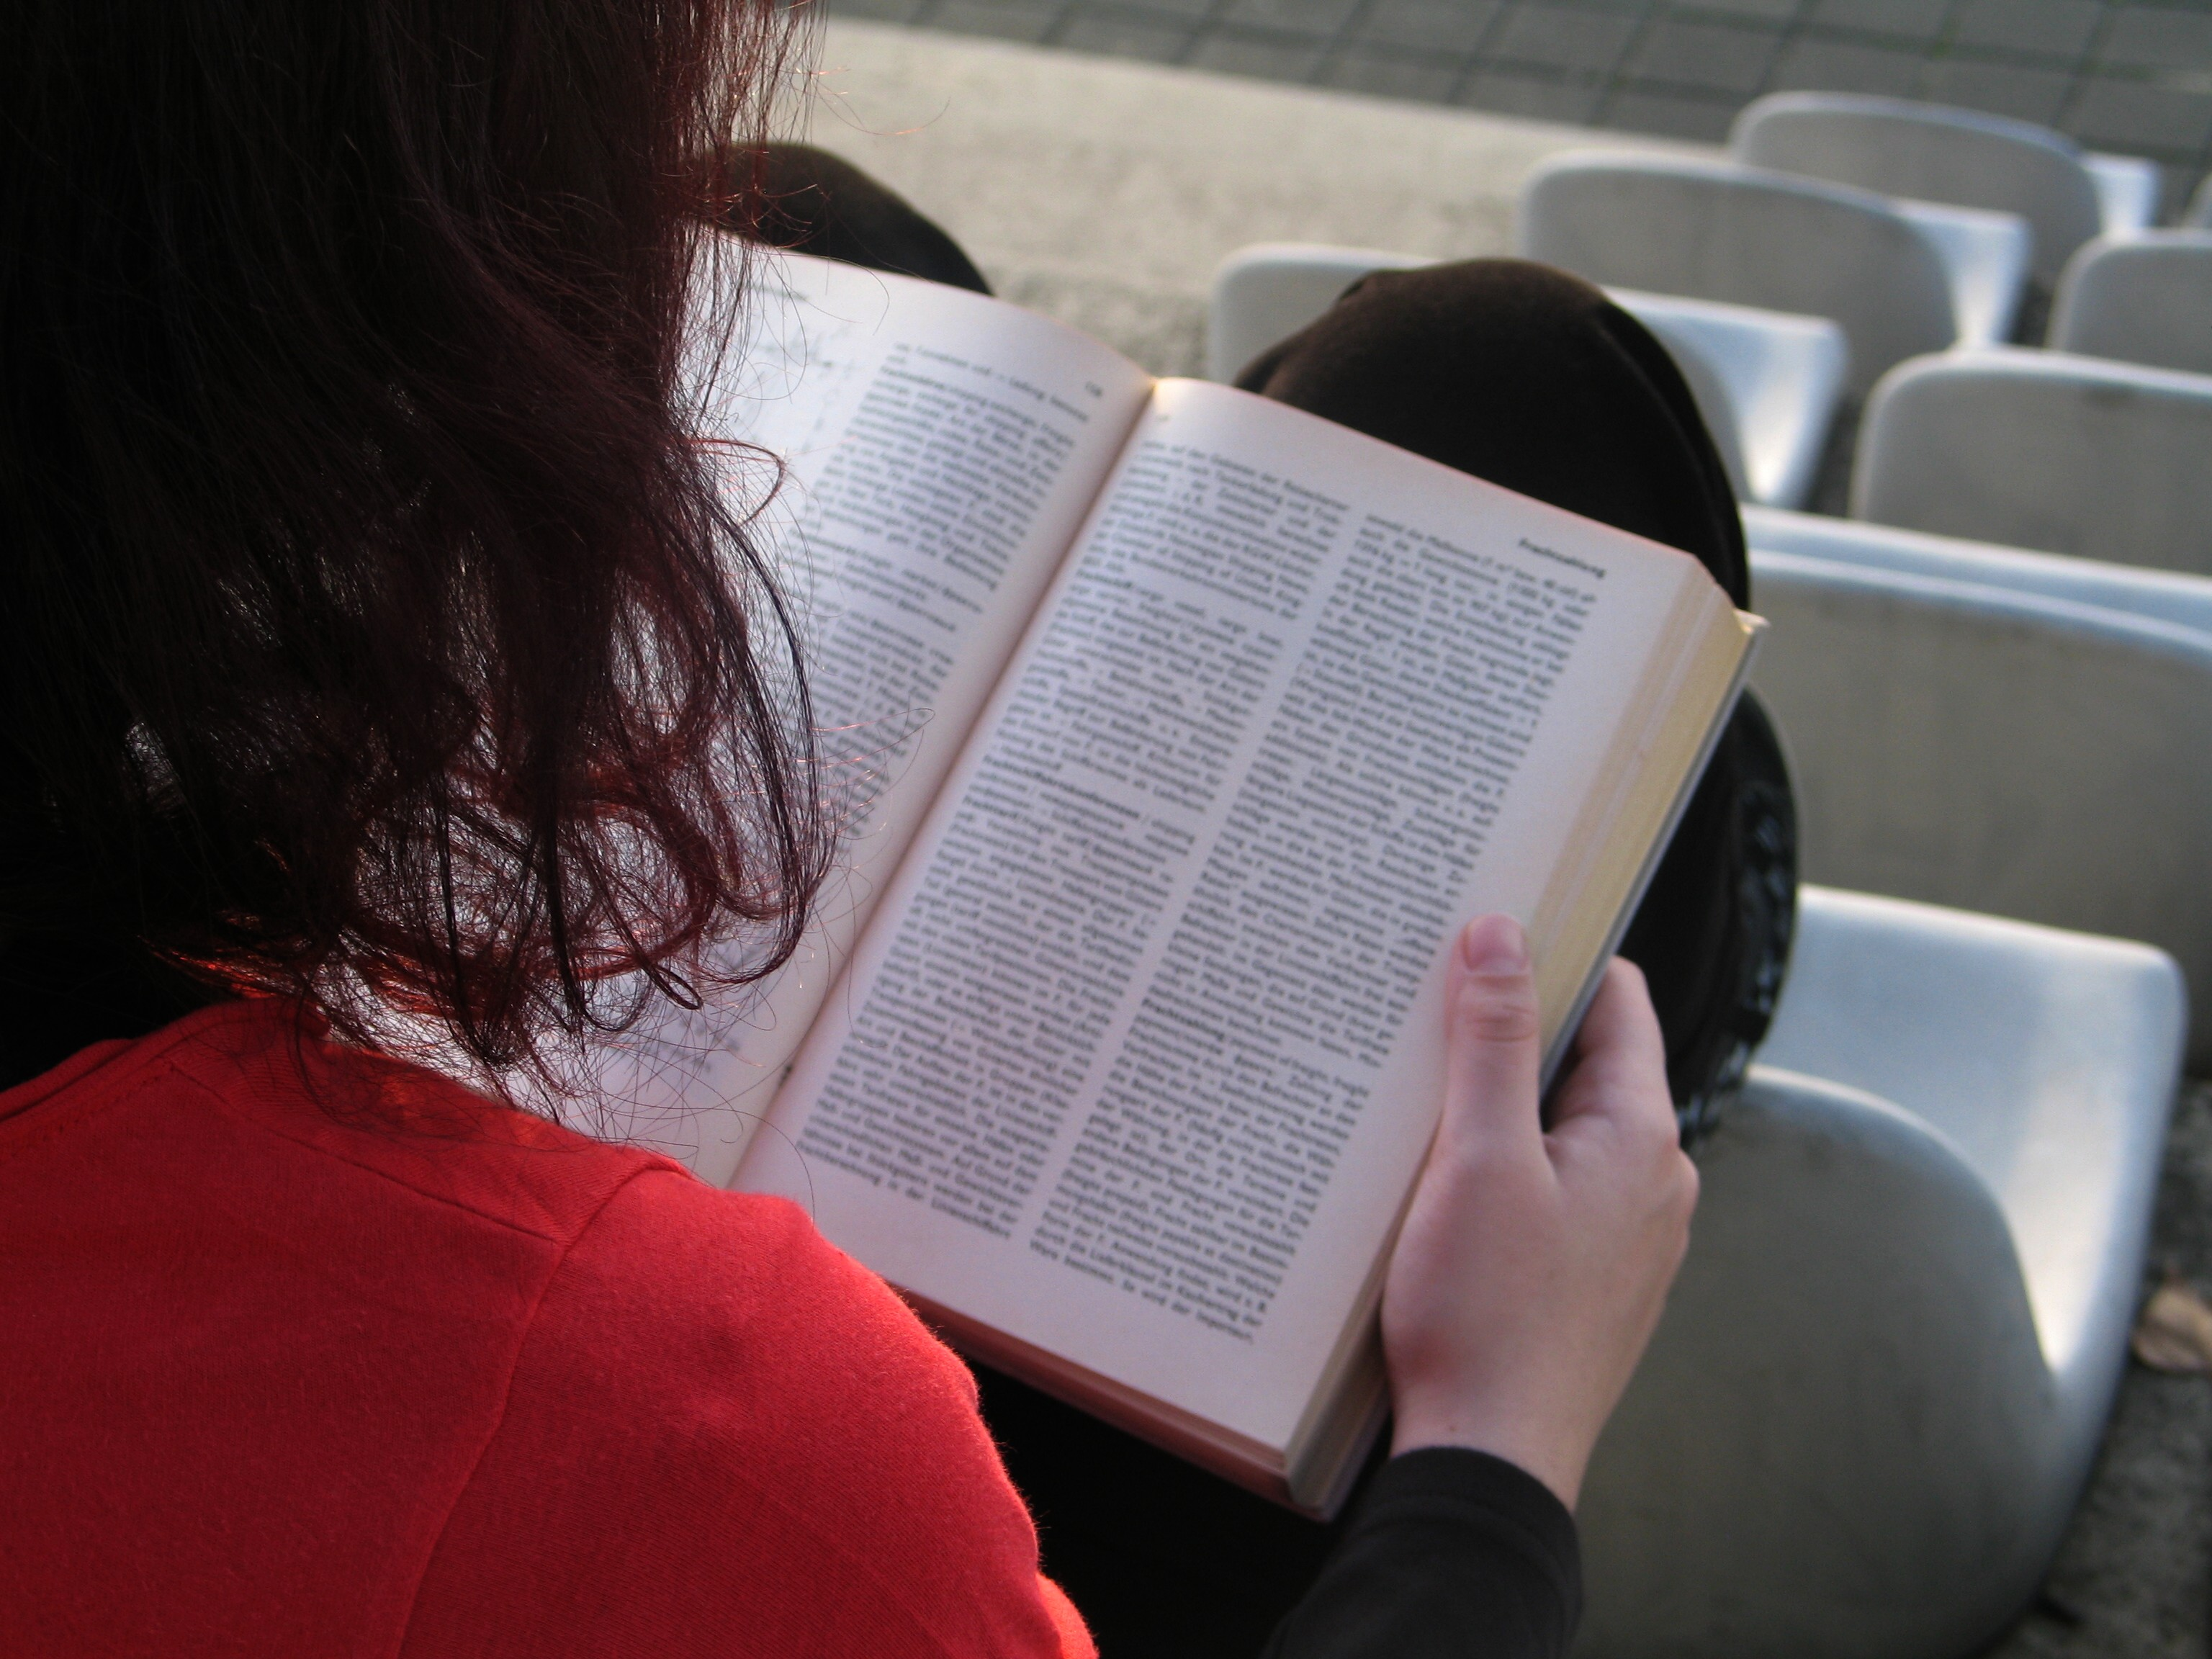 A person reading a book